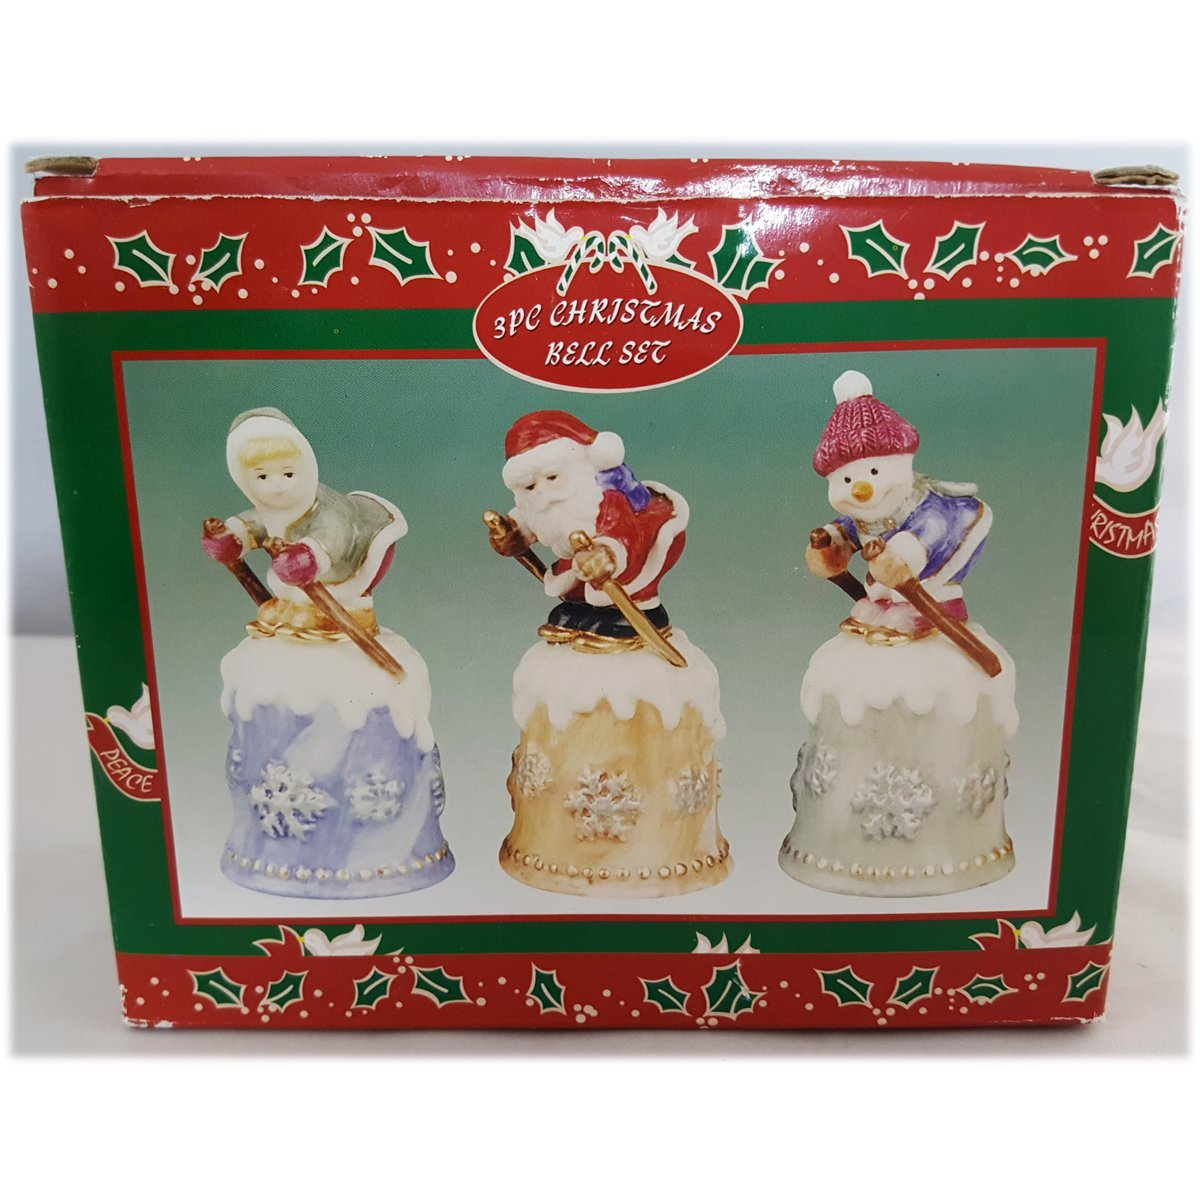 Price Products 3 Piece Christmas Bell Set - Skiing-Santa-Snowman-Girl